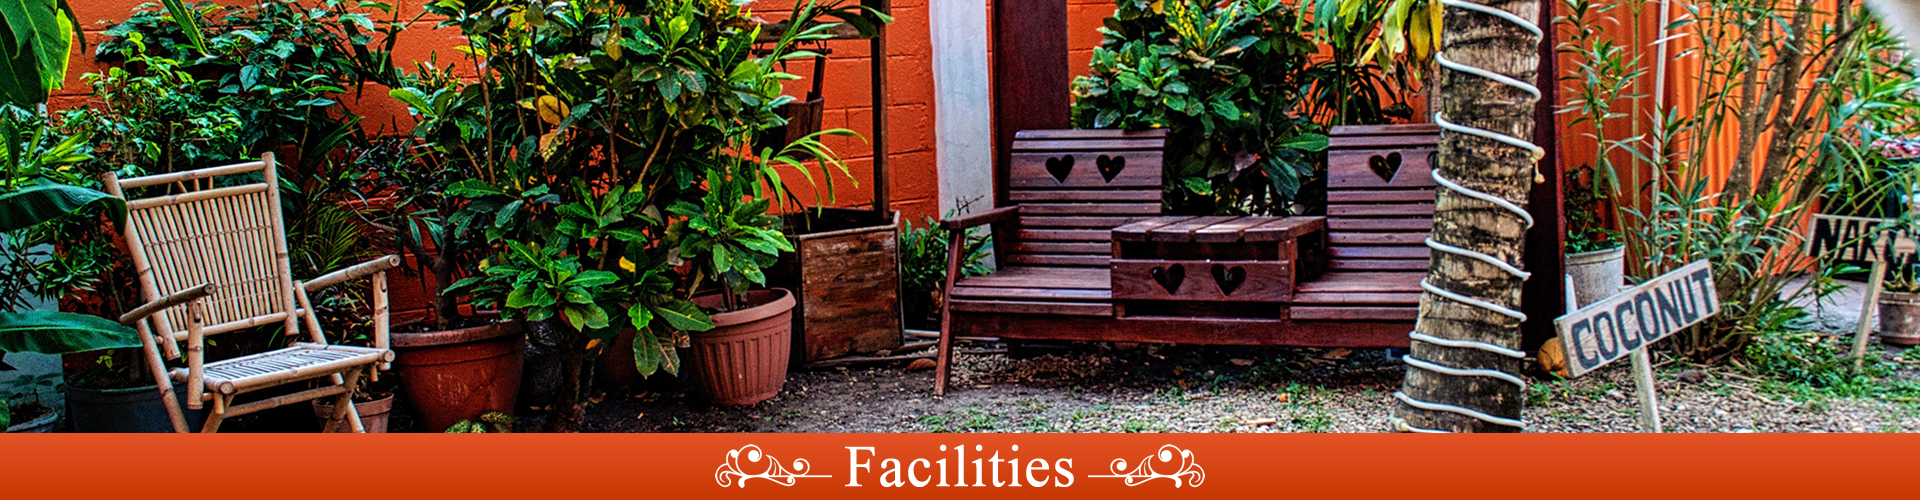 D-victoria-orange-walk-Belize-facilities-02